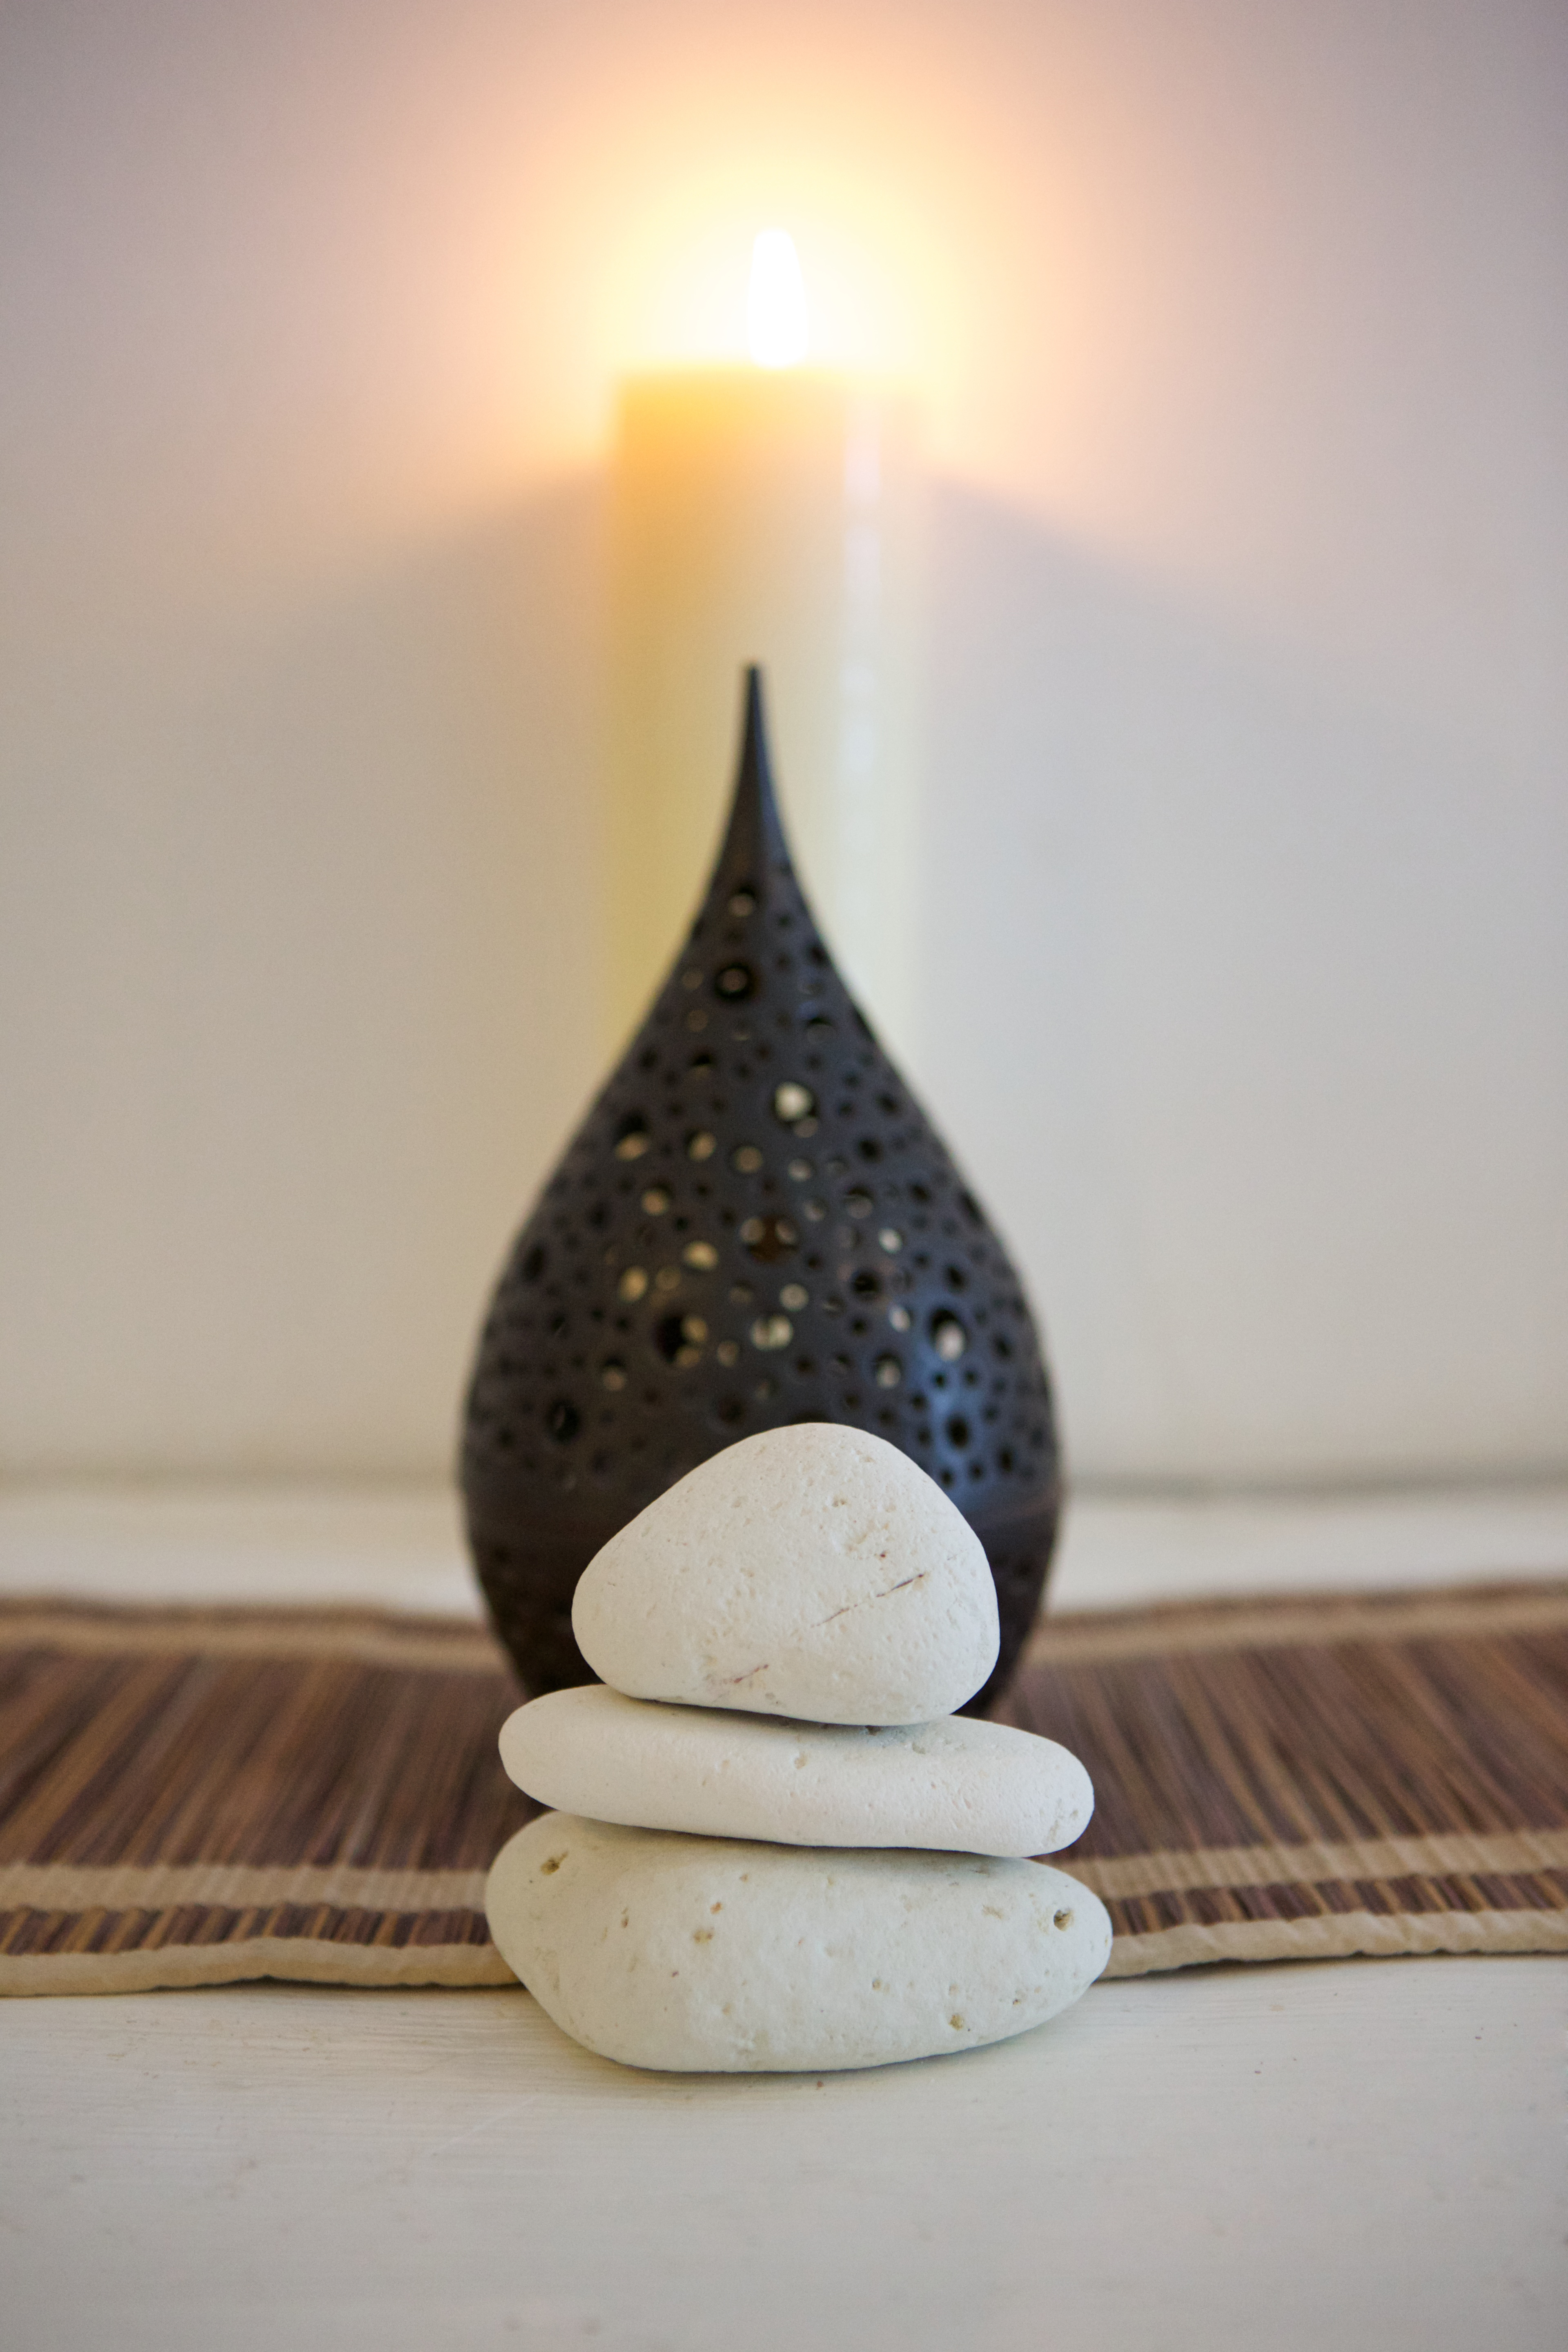 Candle & stones